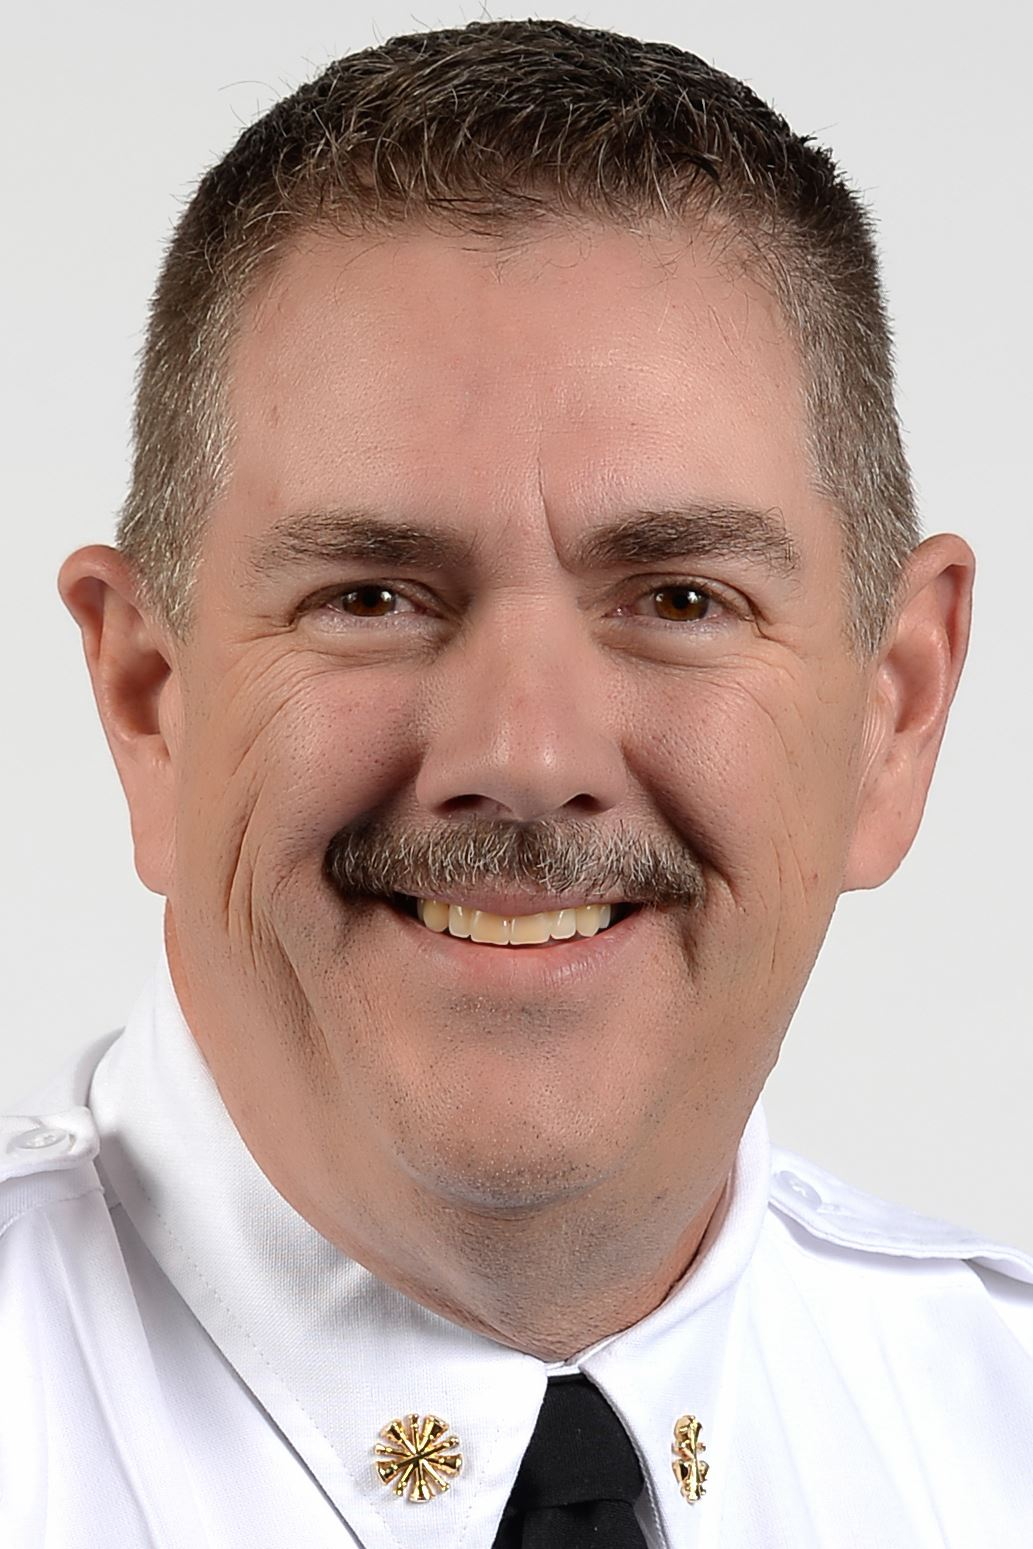 Chief Norris W. Croom III